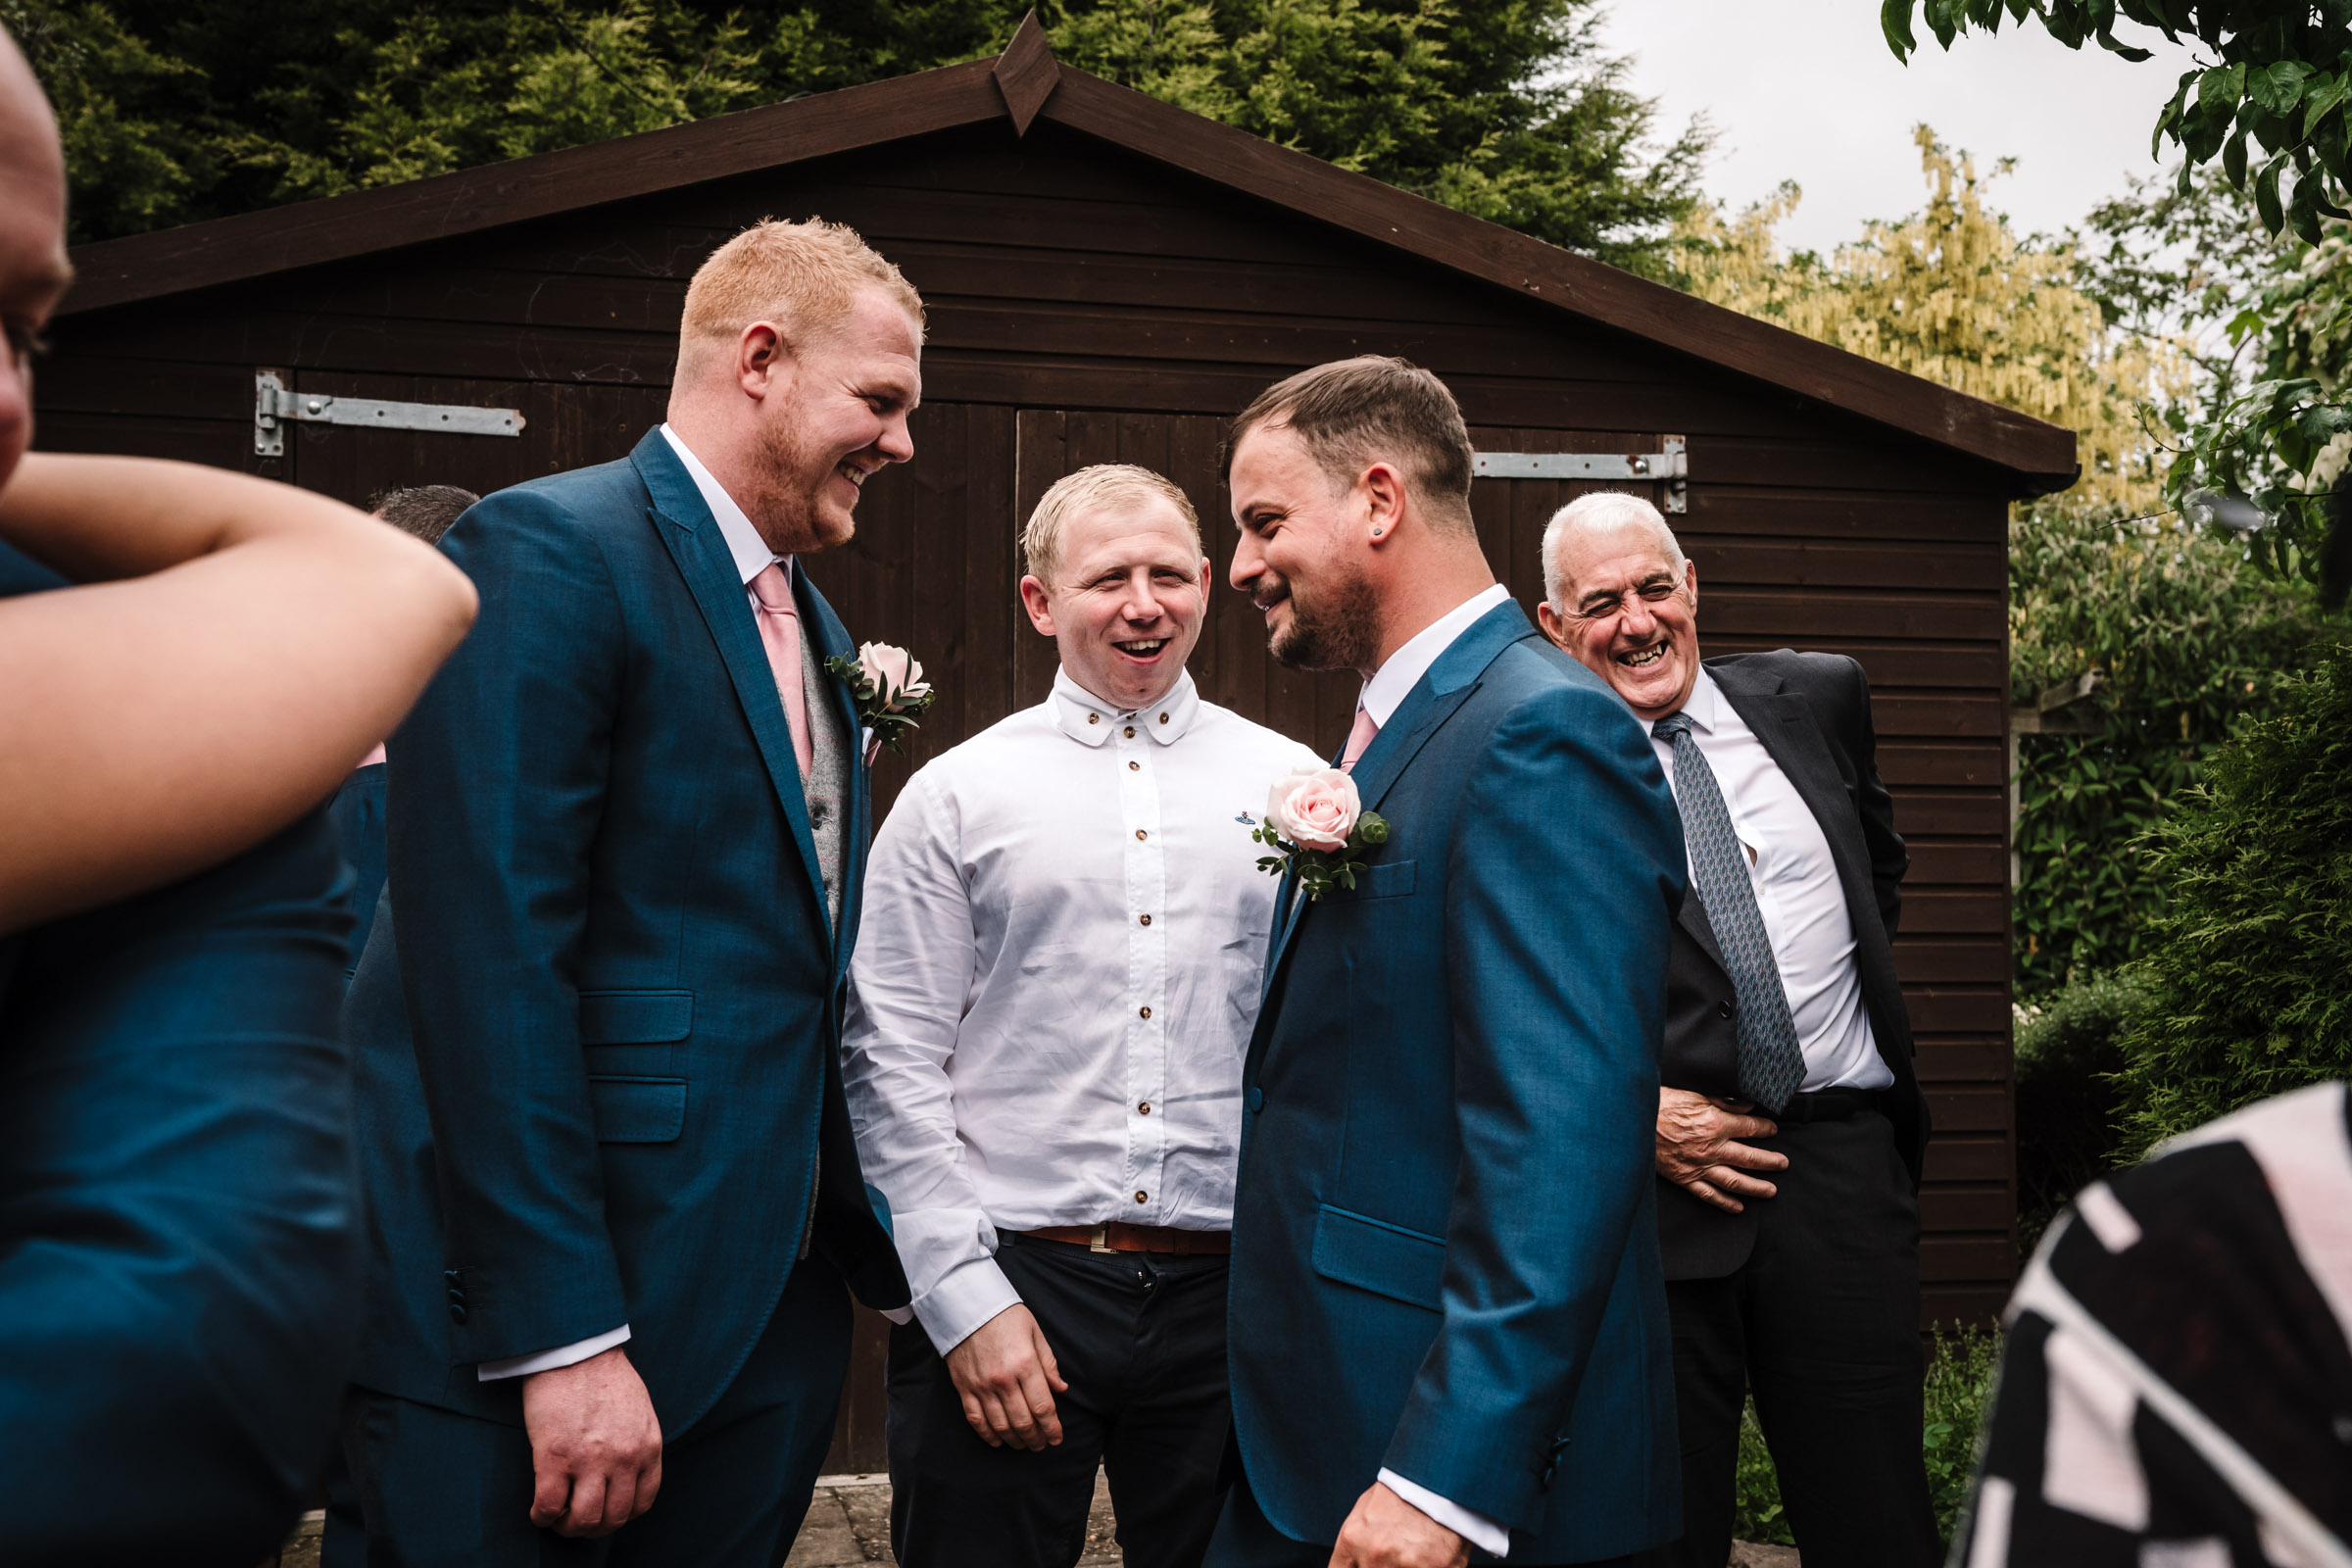 Groom with guests at royal arms hotel wedding